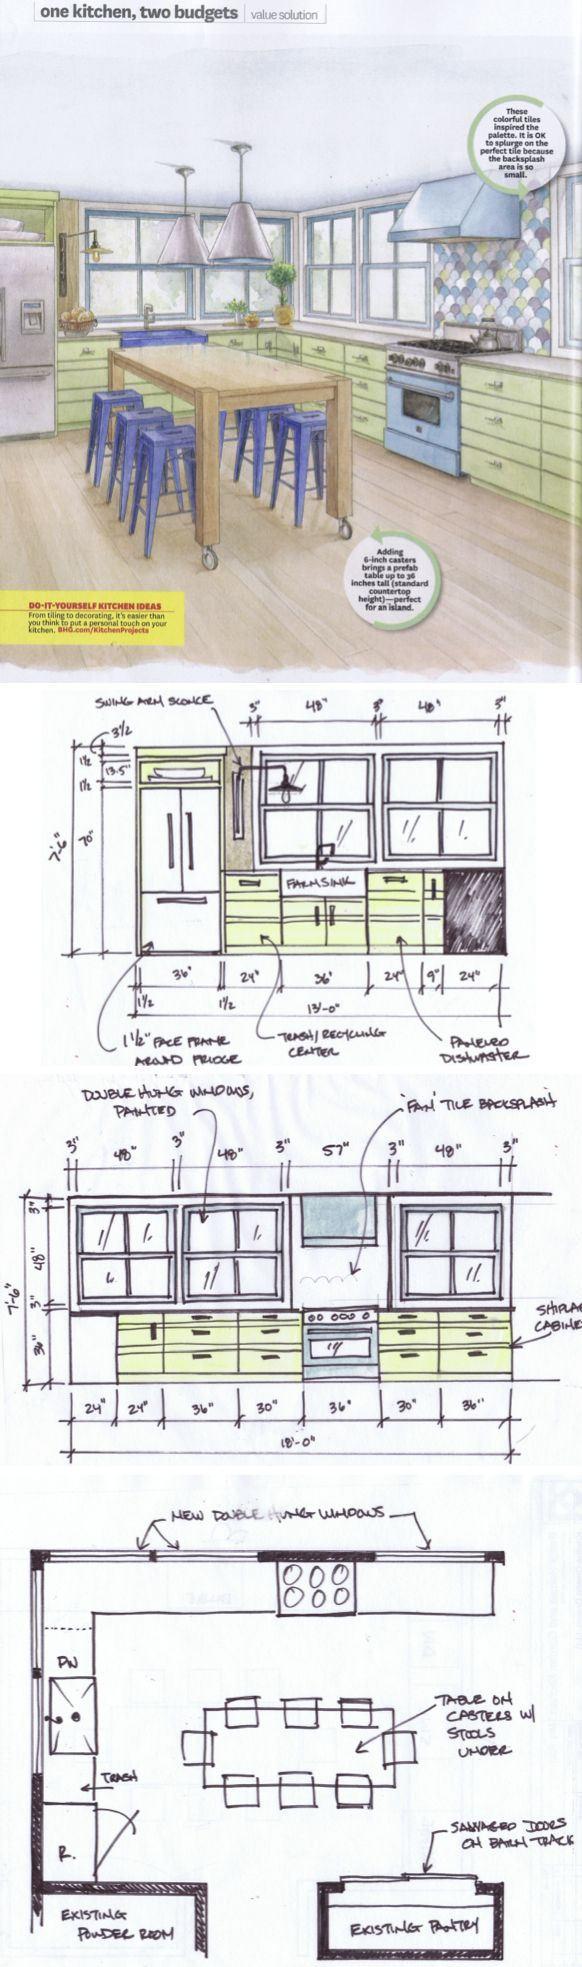 Bhg Kitchen And Bath 17 Best Ideas About Kitchen And Bath Design On Pinterest Black